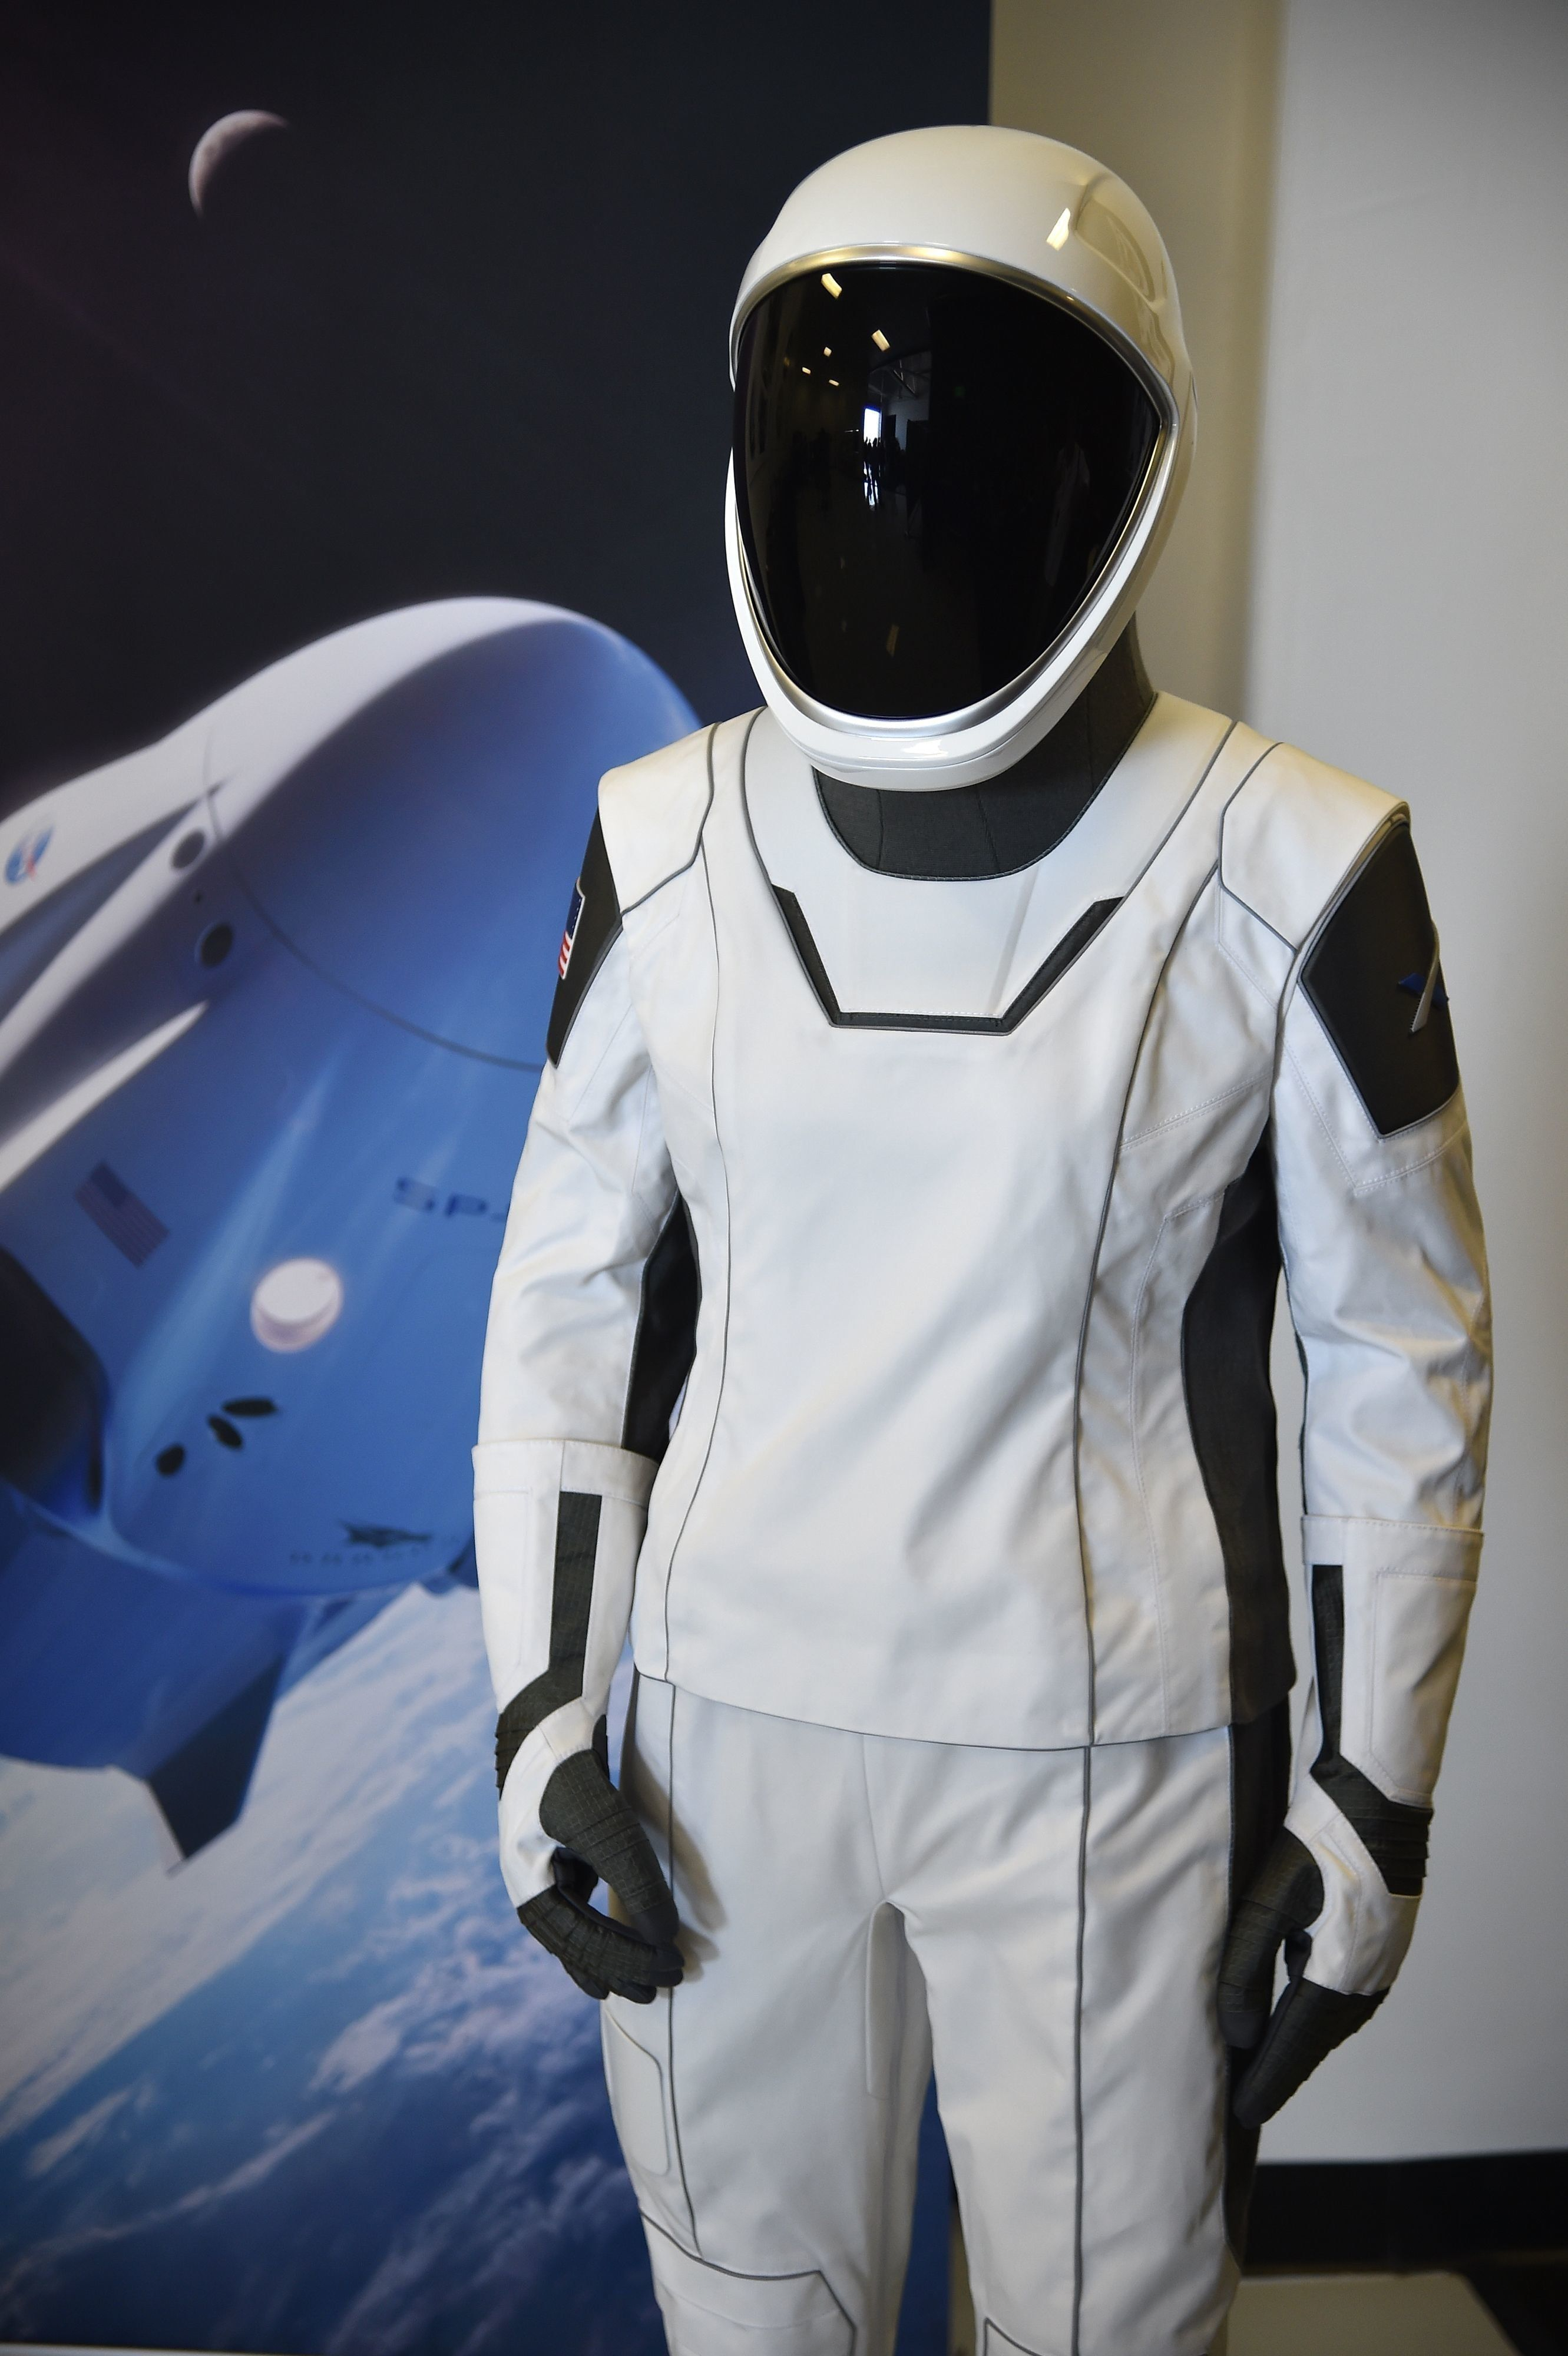 The SpaceX spacesuit to be wore by NASA astronauts that will travel to the International Space Station aboard the SpaceX Crew Dragon capsule is displayed during a media tour at SpaceX headquarters in Hawthorne, California, on August 13, 2018. - According to the Teslarati website the majority of the helmet is 3D printed and SpaceX has used that capability to directly integrate valves, a number of complex mechanisms for visor retraction and locking, microphones, and even air cooling channels into the helmets structure. The suit itself is designed so that necessary external connections (power, water, air, etc) all pass through one single umbilical panel located in the middle of the suitÕs right thigh.  The suit is designed to allow astronauts to work in extreme conditions including hard vacuum but not space walks. (Photo by Robyn Beck / AFP)        (Photo credit should read ROBYN BECK/AFP/Getty Images)